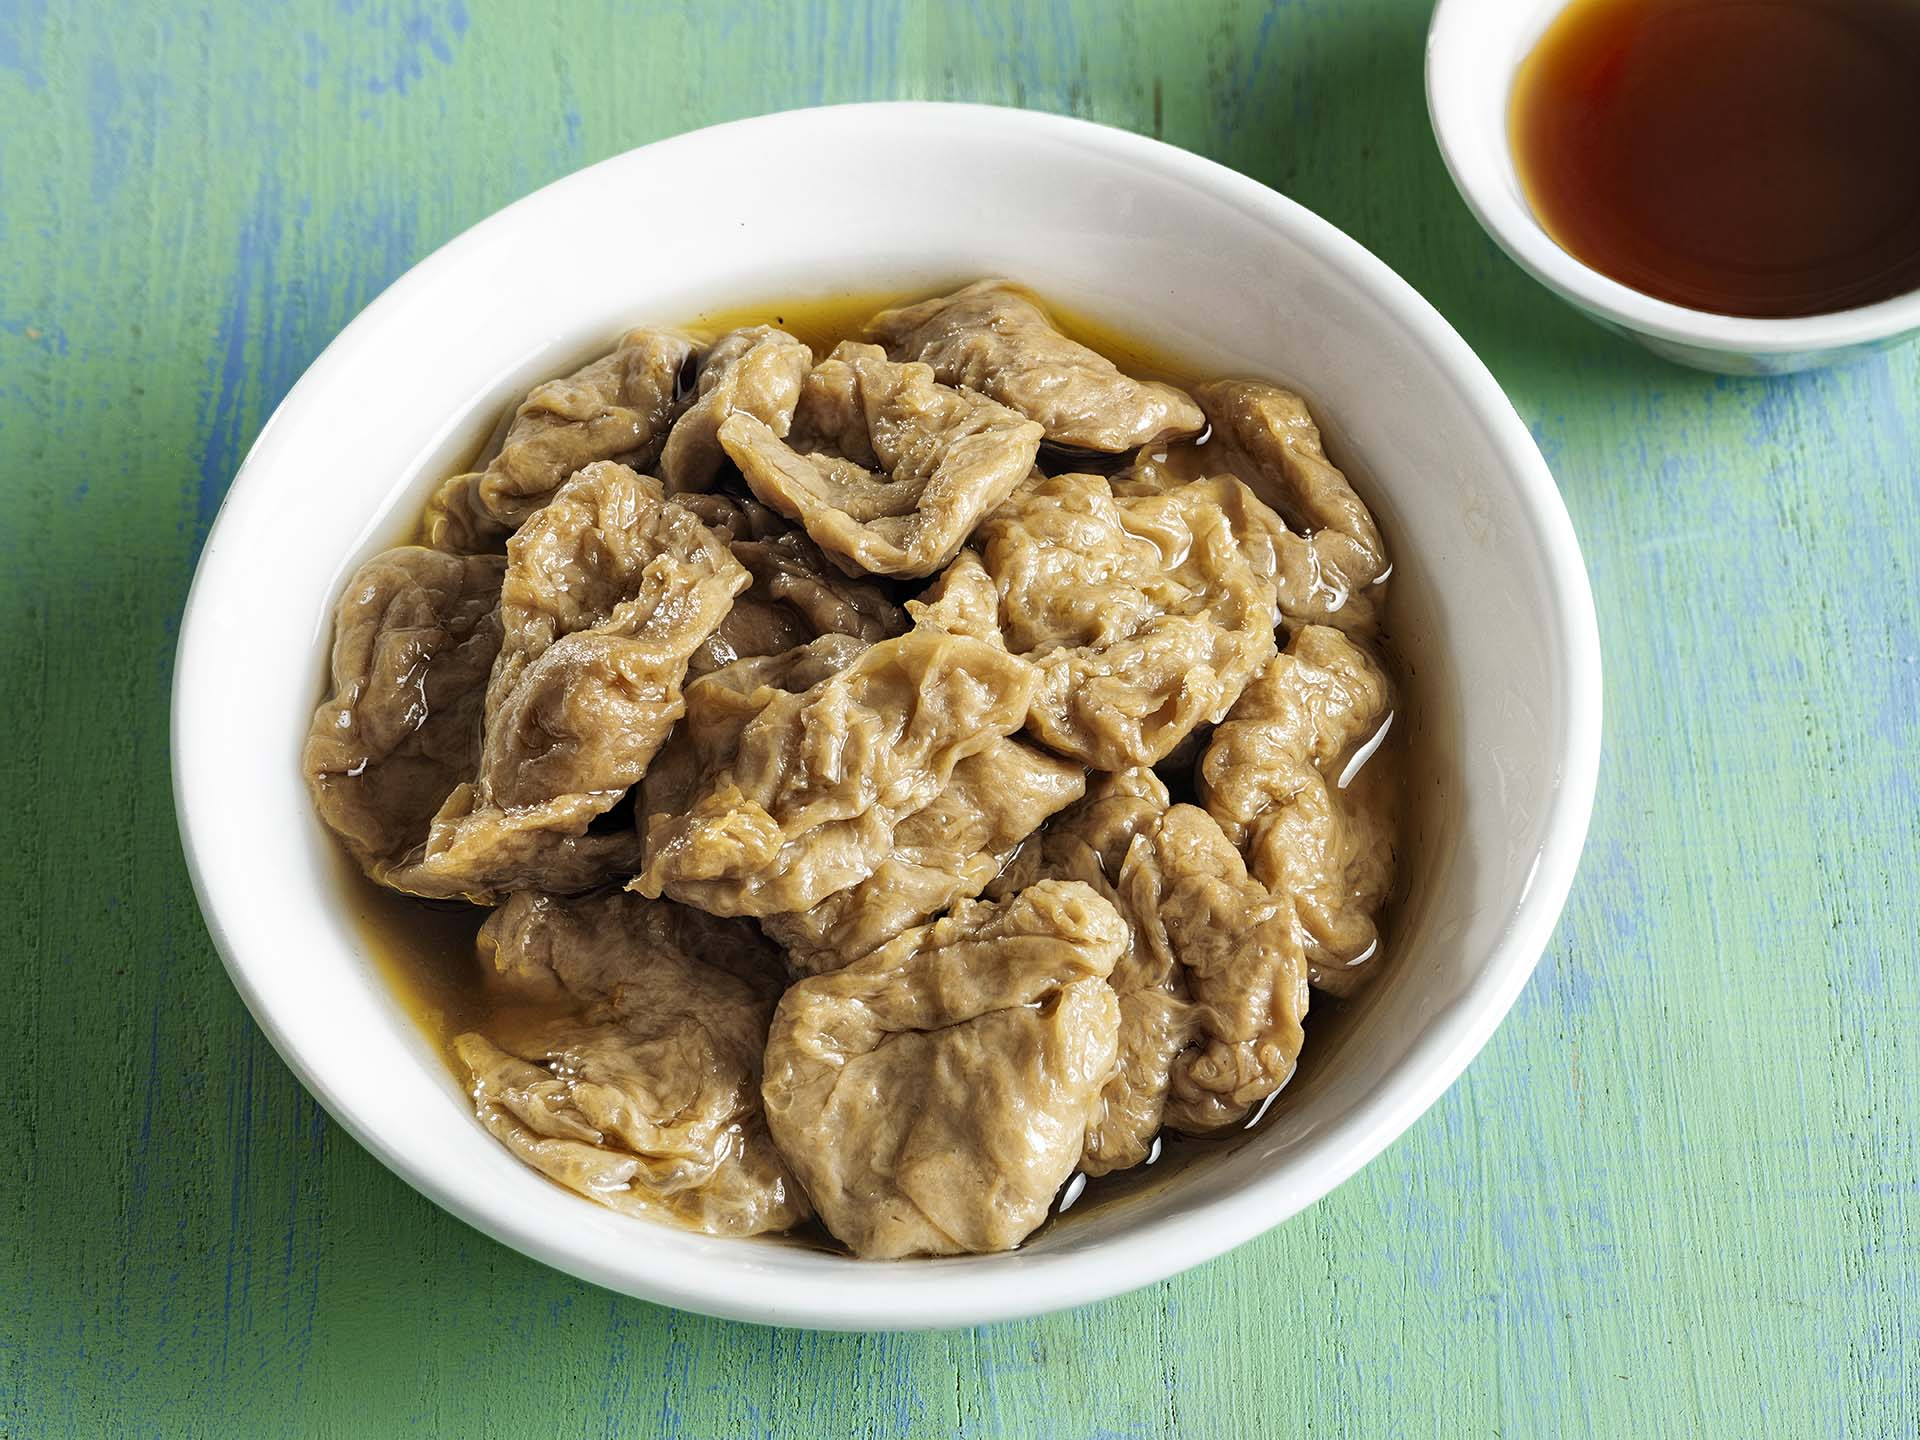 A close up of a bowl of seitan and a side of soy sauce sitting on a blue/green background.